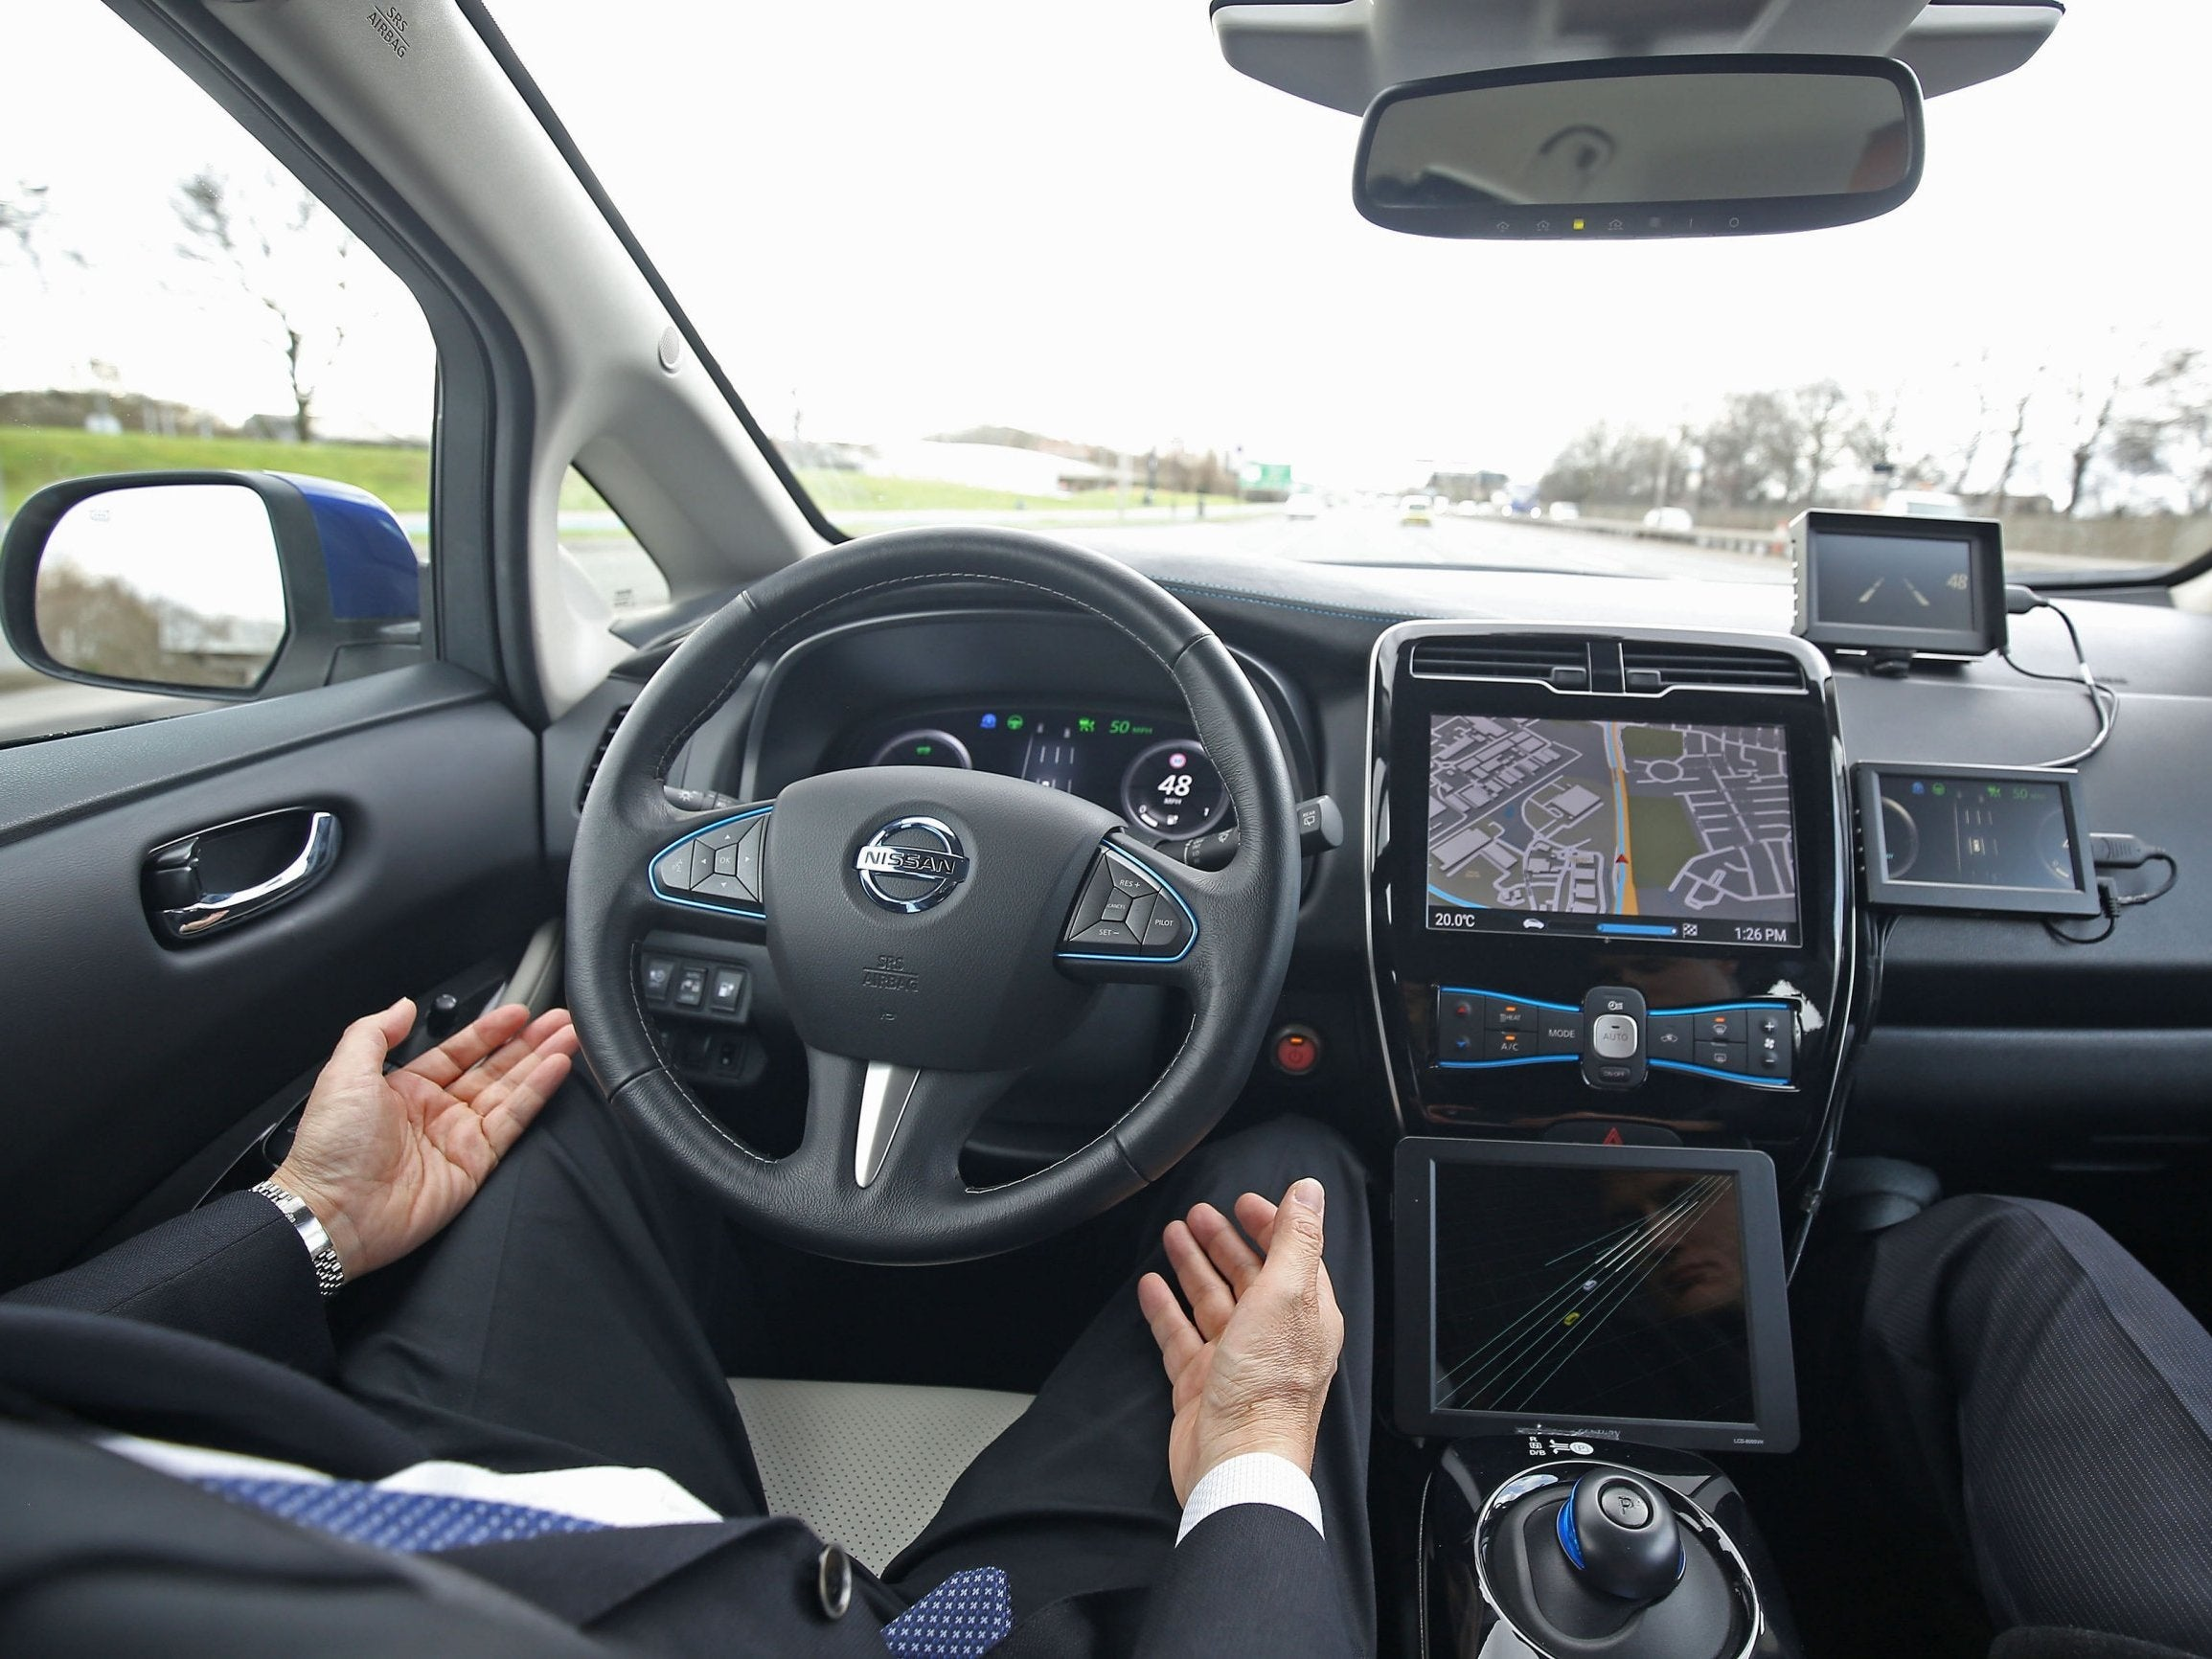 Driverless cars to be rolled out on UK roads by end of 2019, government announces